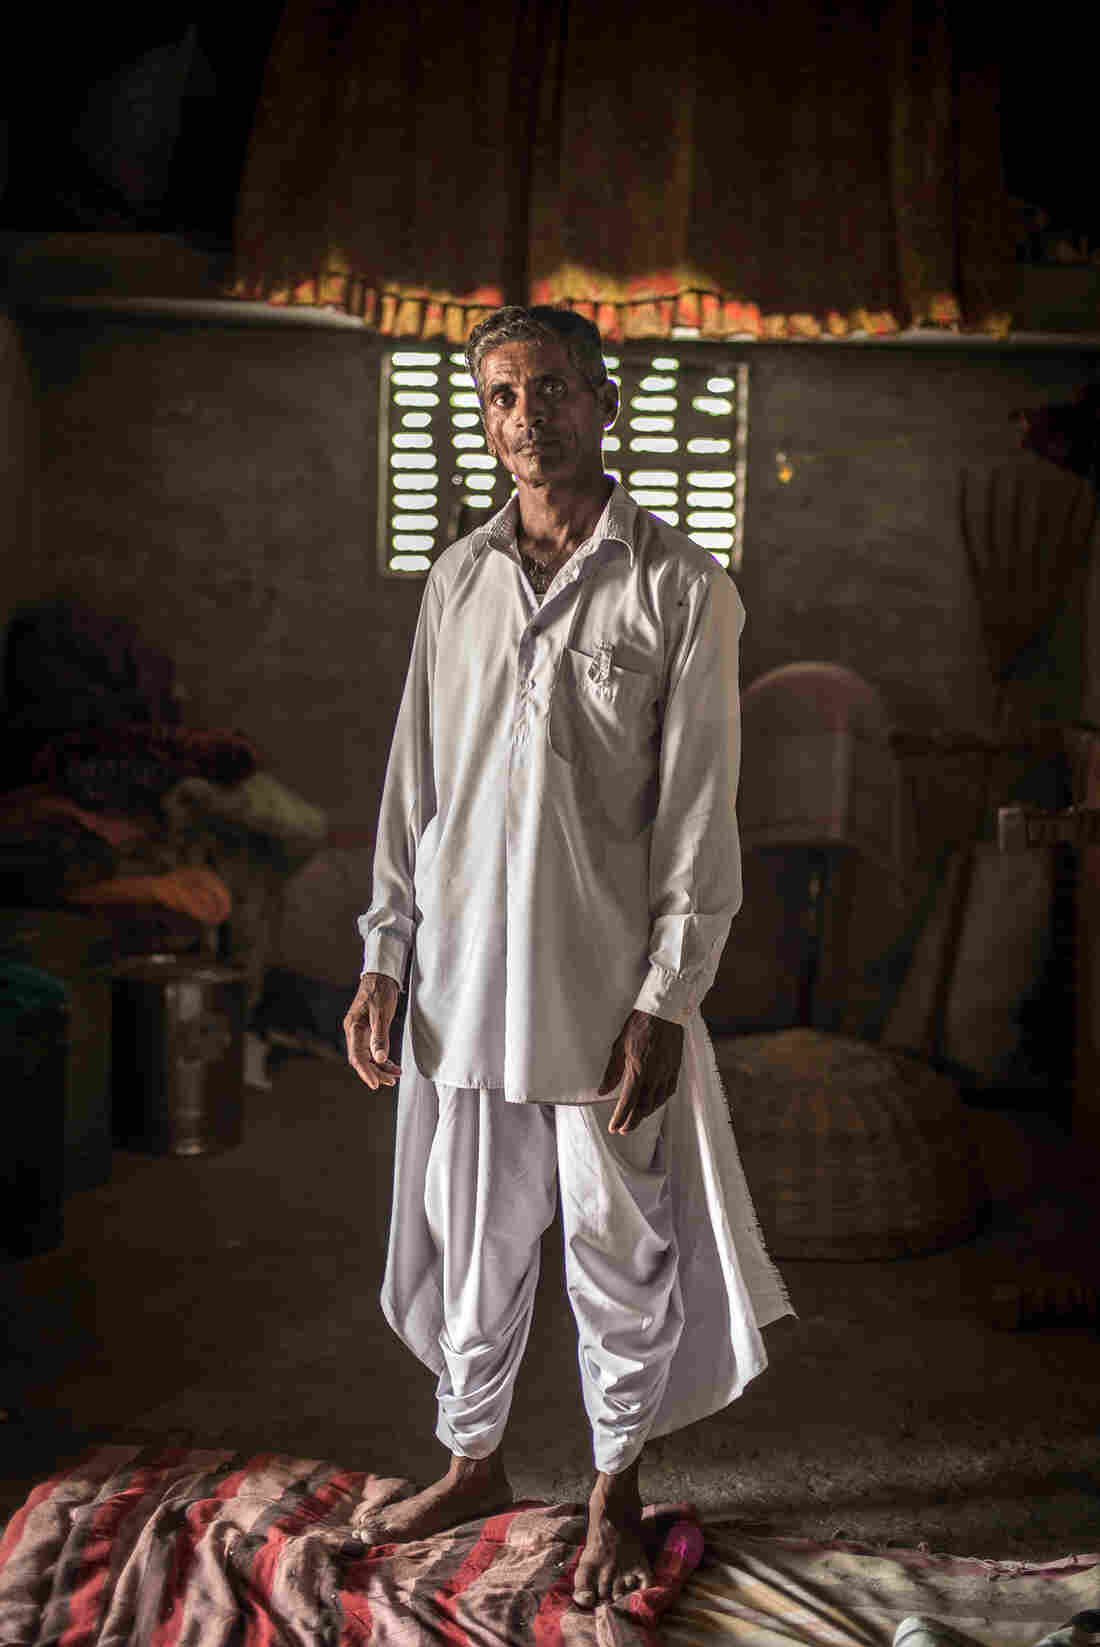 Nimmu's father, Lumbaram, regrets marrying off his daughter so young. But he's trying to make it up to her. He's told her in-laws he won't send her to them as long as she's doing well in school.